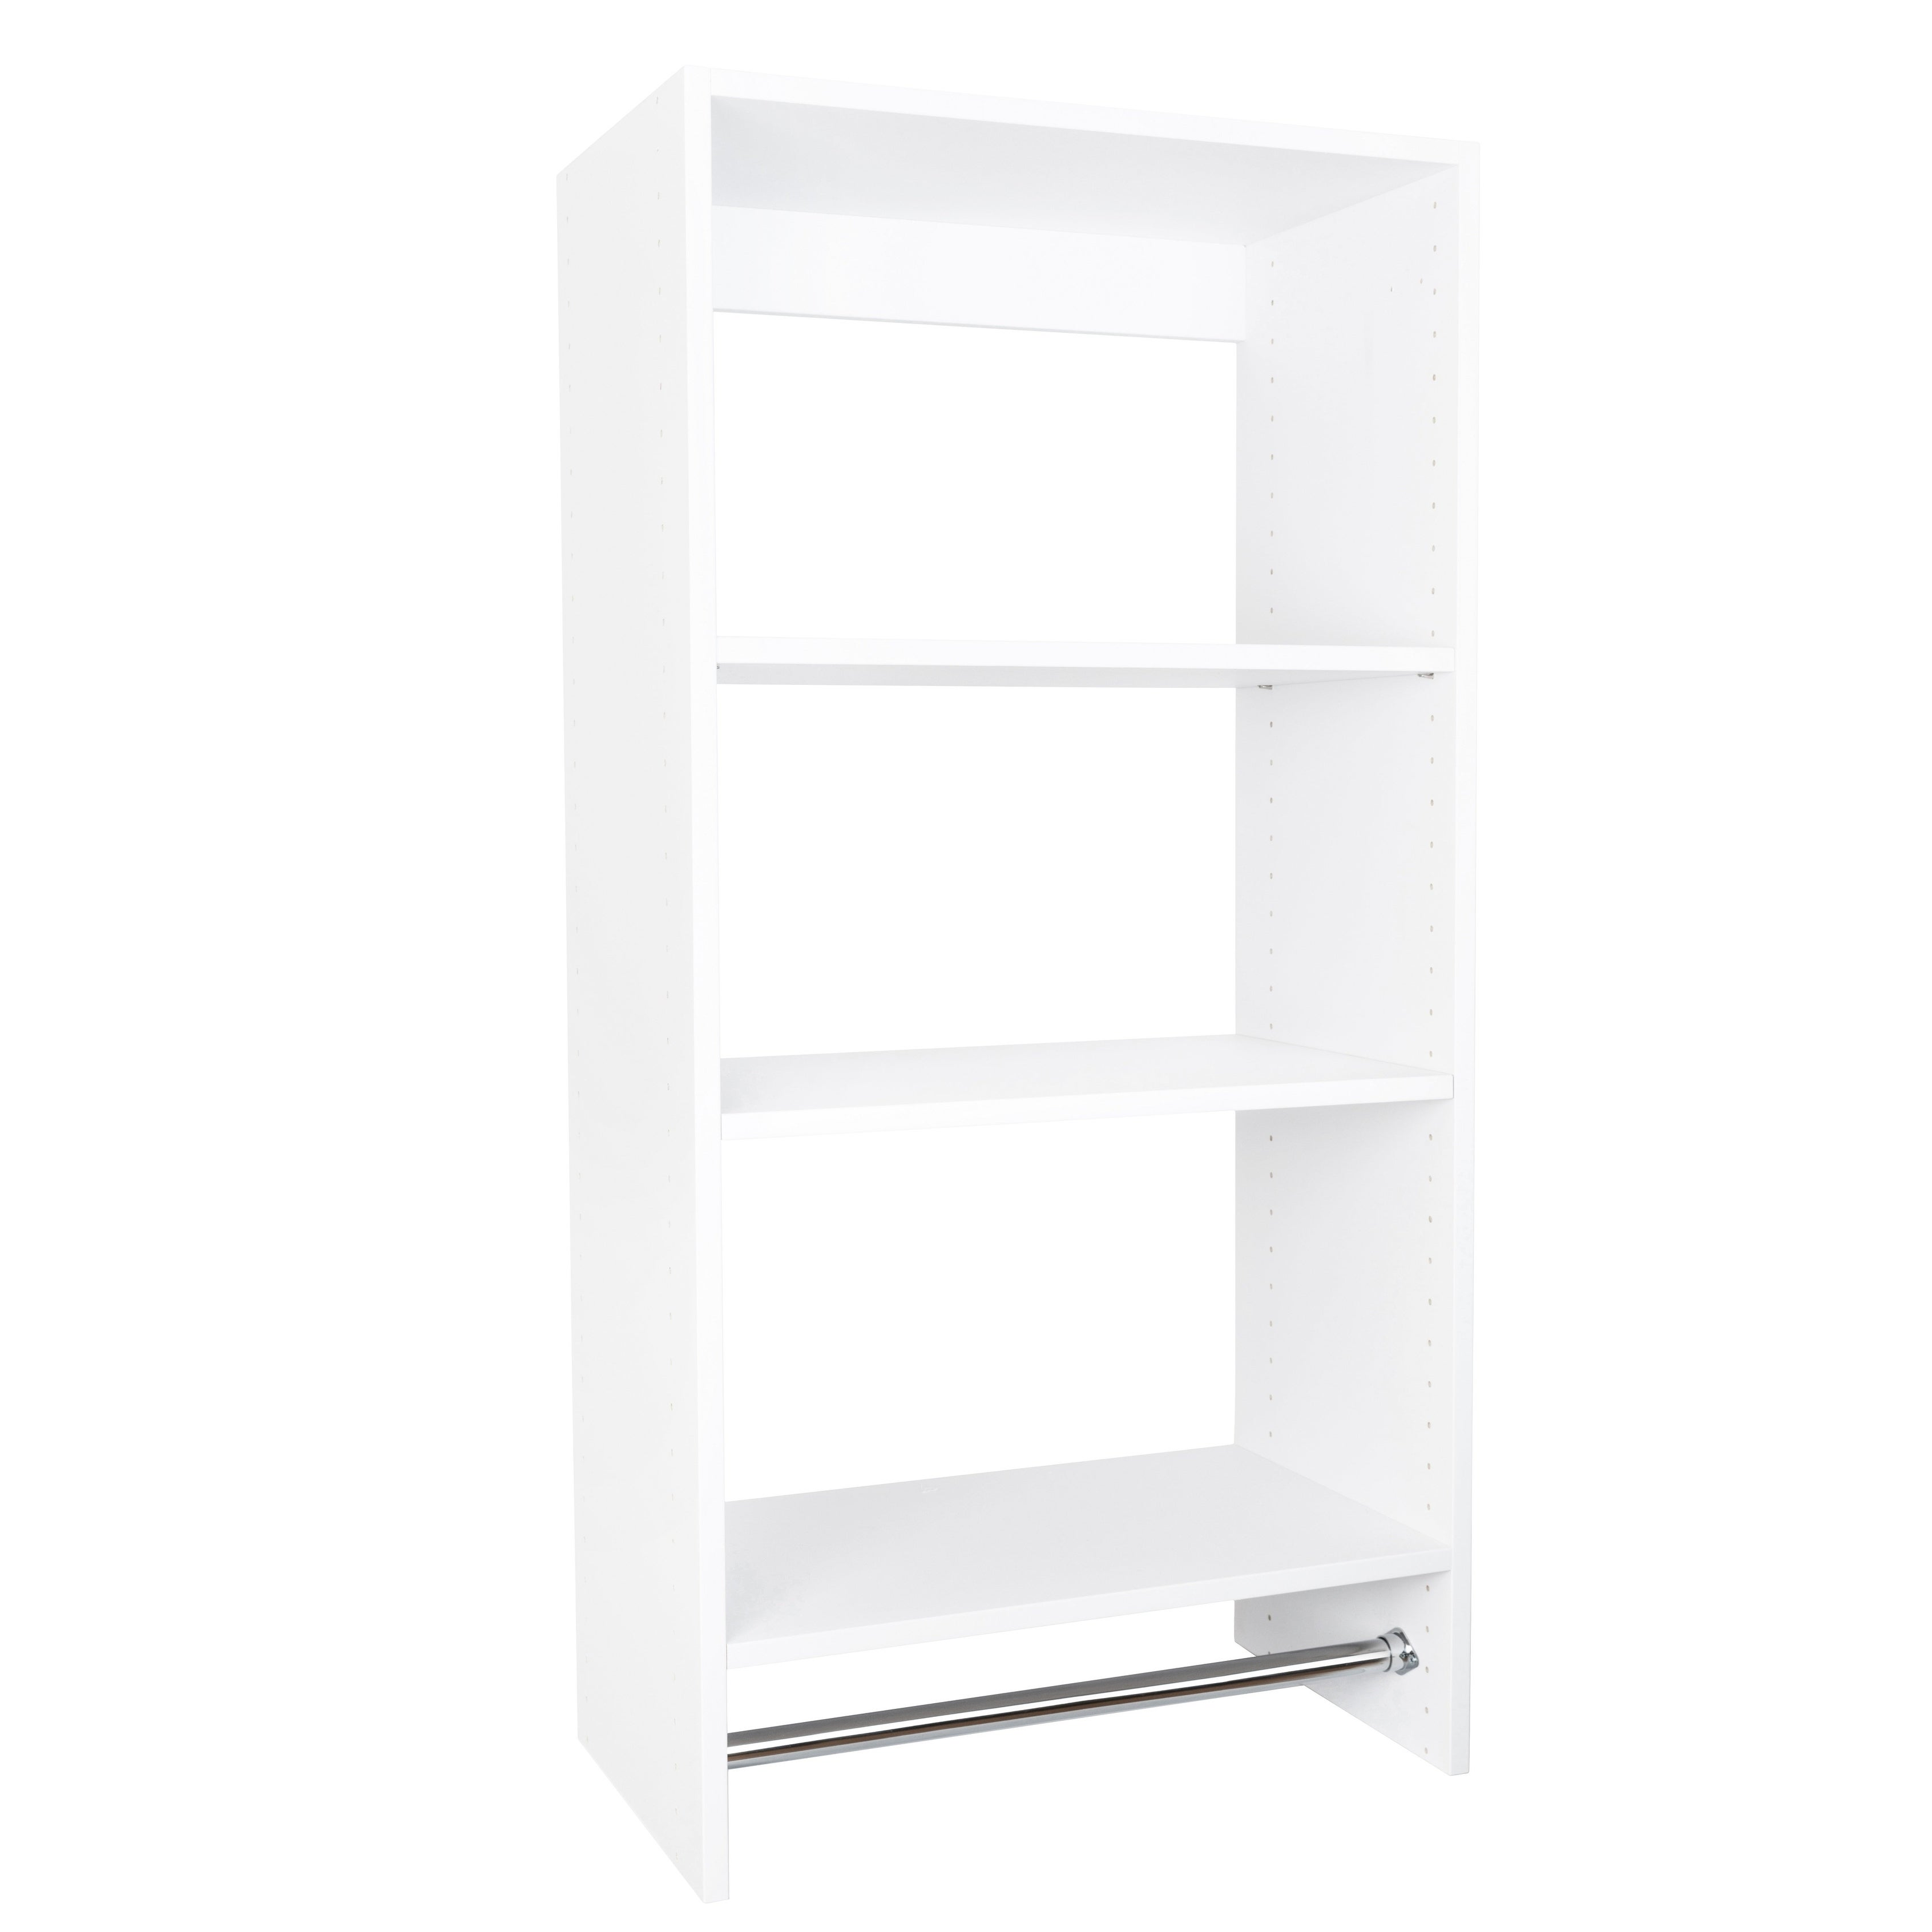 Shop Modular Closets Plywood Short Hanging With Upper Shelves Closet System    On Sale   Free Shipping Today   Overstock.com   21282073